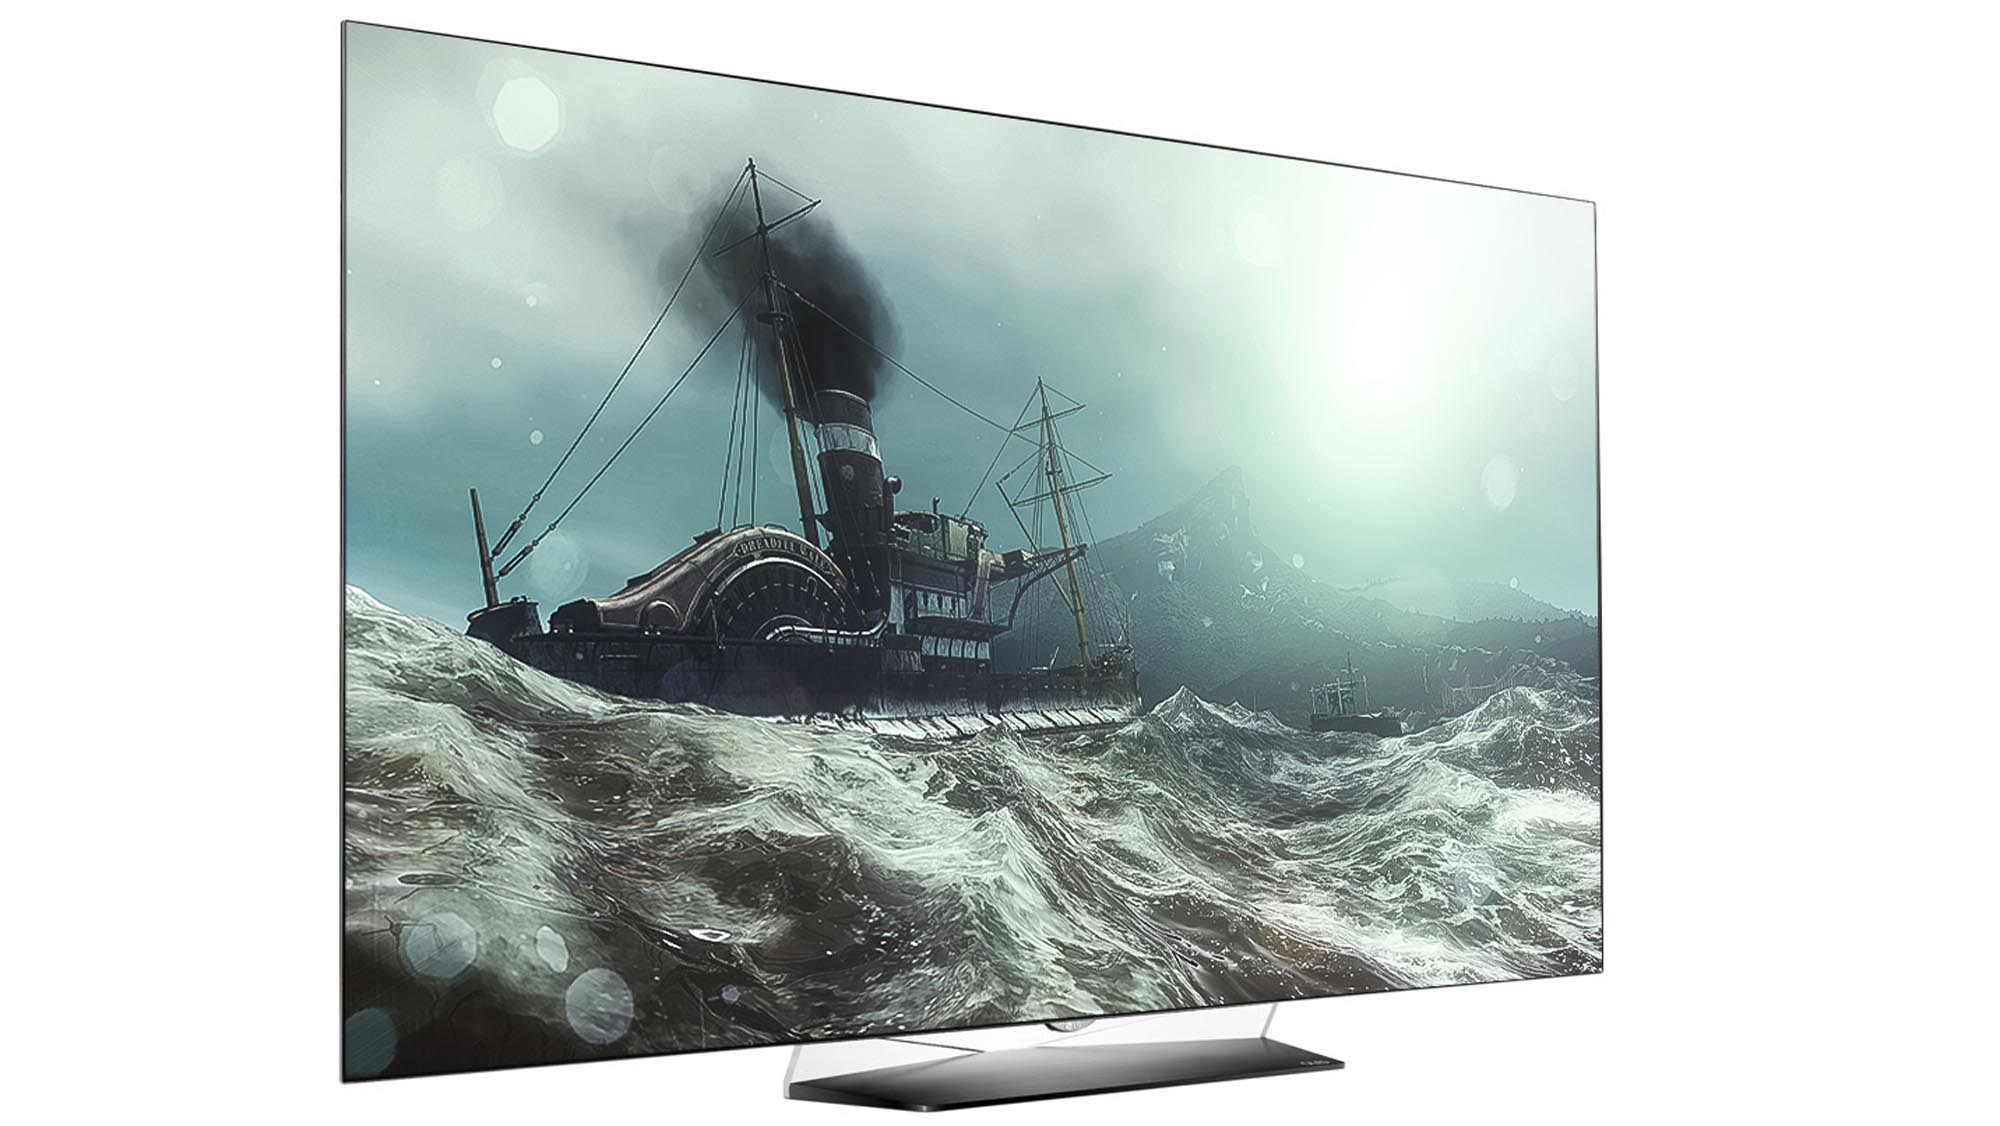 lg tv screen. next in line is a number, here being 55, which simply denotes the size of screen inches. this will obviously change depending on lg tv